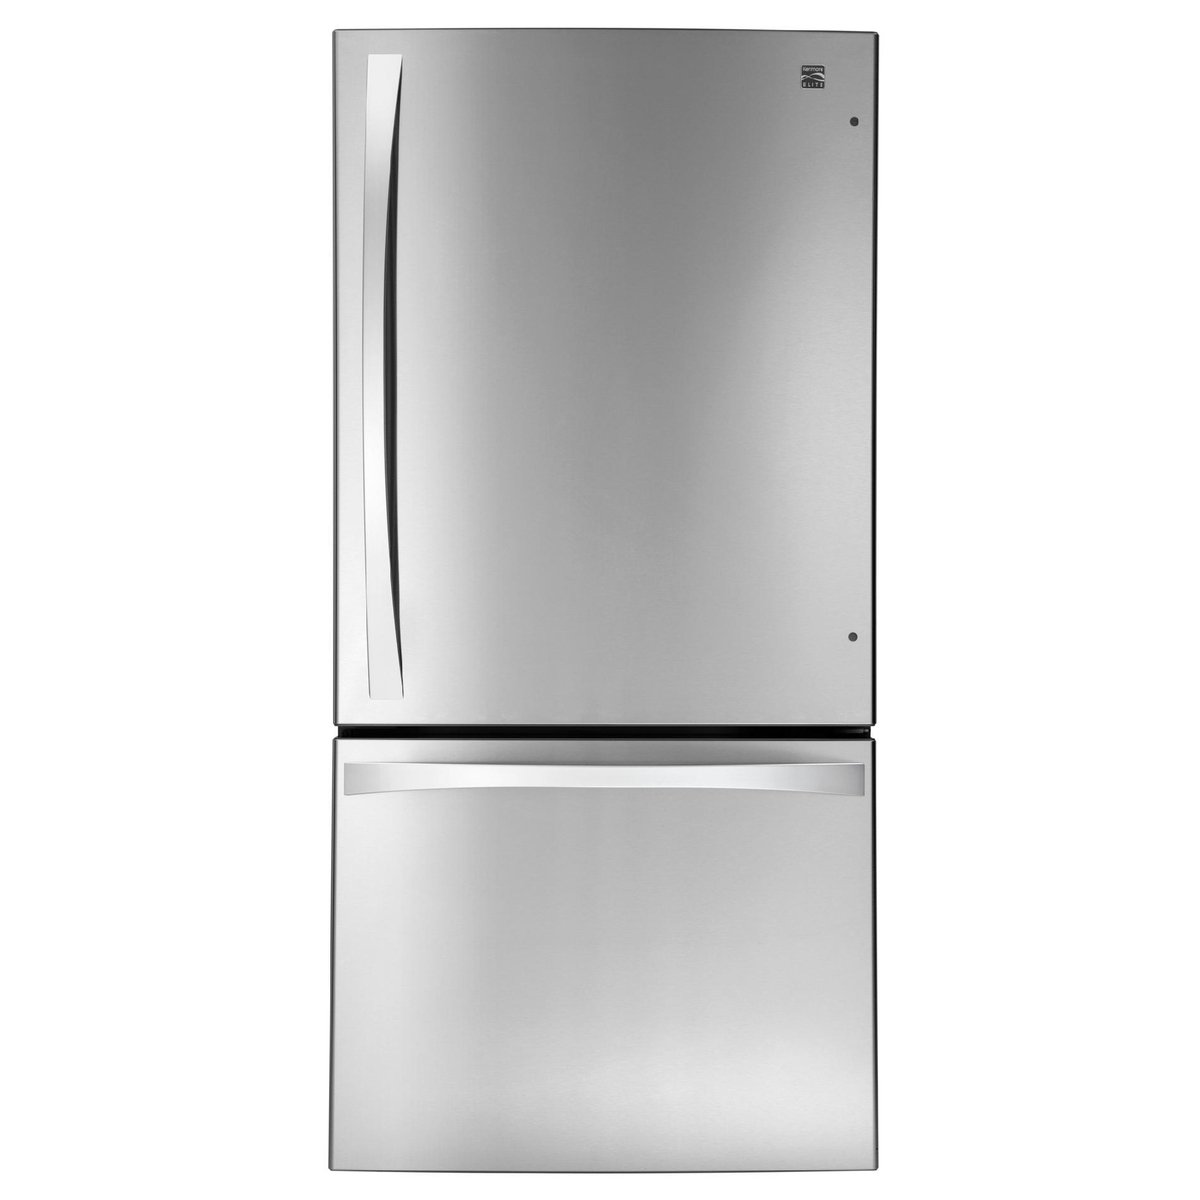 Kenmore Elite 79043 24.1 cu. ft. Bottom Freezer Refrigerator in Stainless Steel, includes delivery and hookup (Available in select cities only) by Kenmore (Image #1)